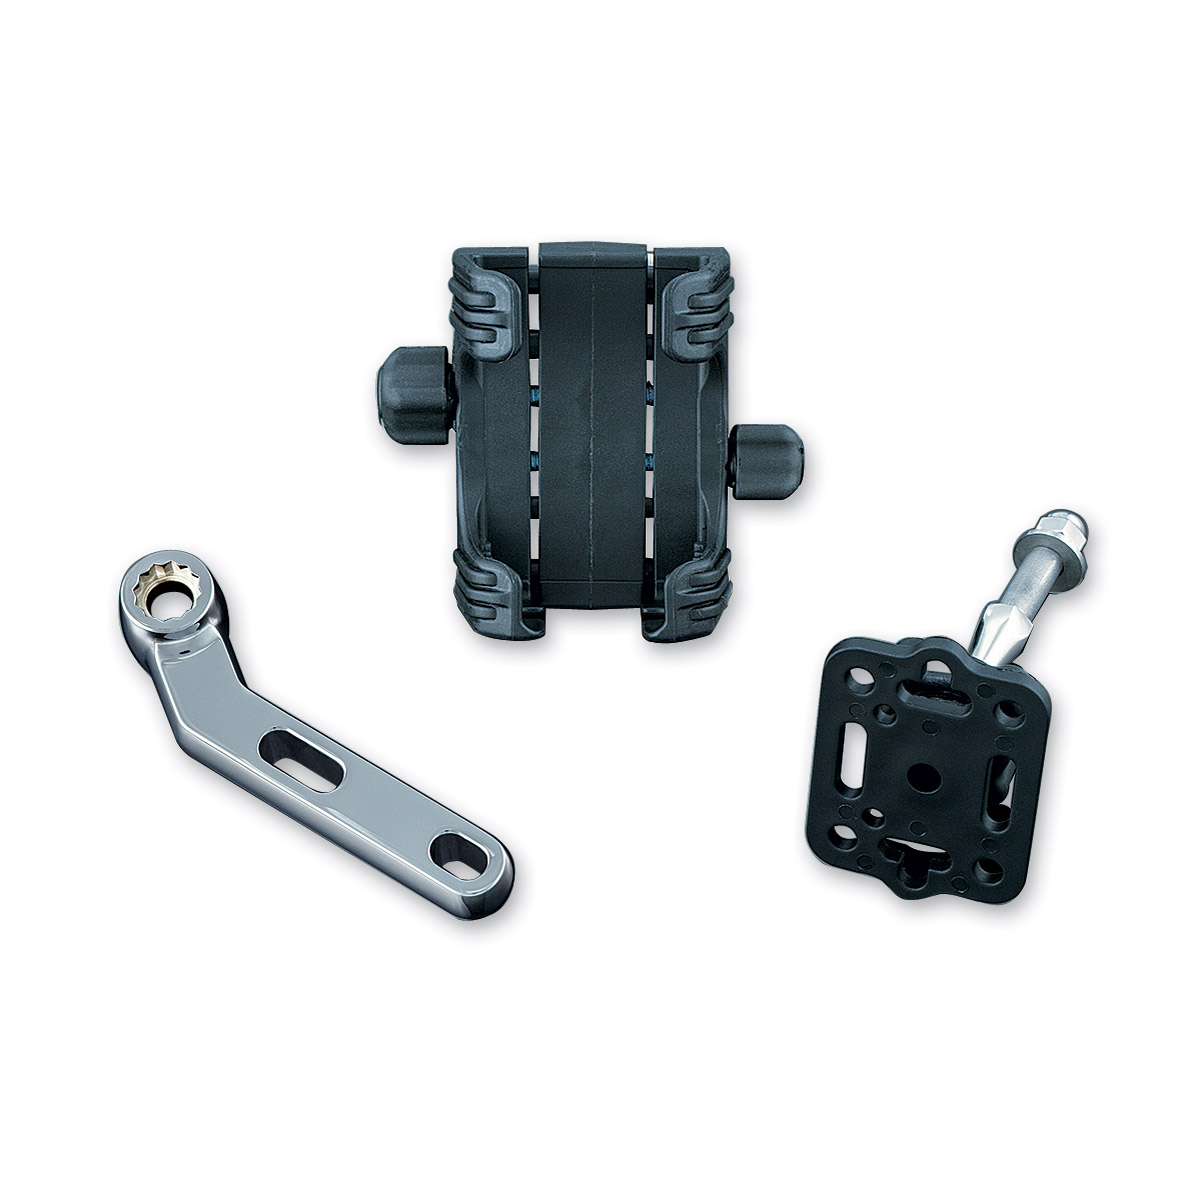 Tech-Connect Cell  Phone or Device Mount Systems